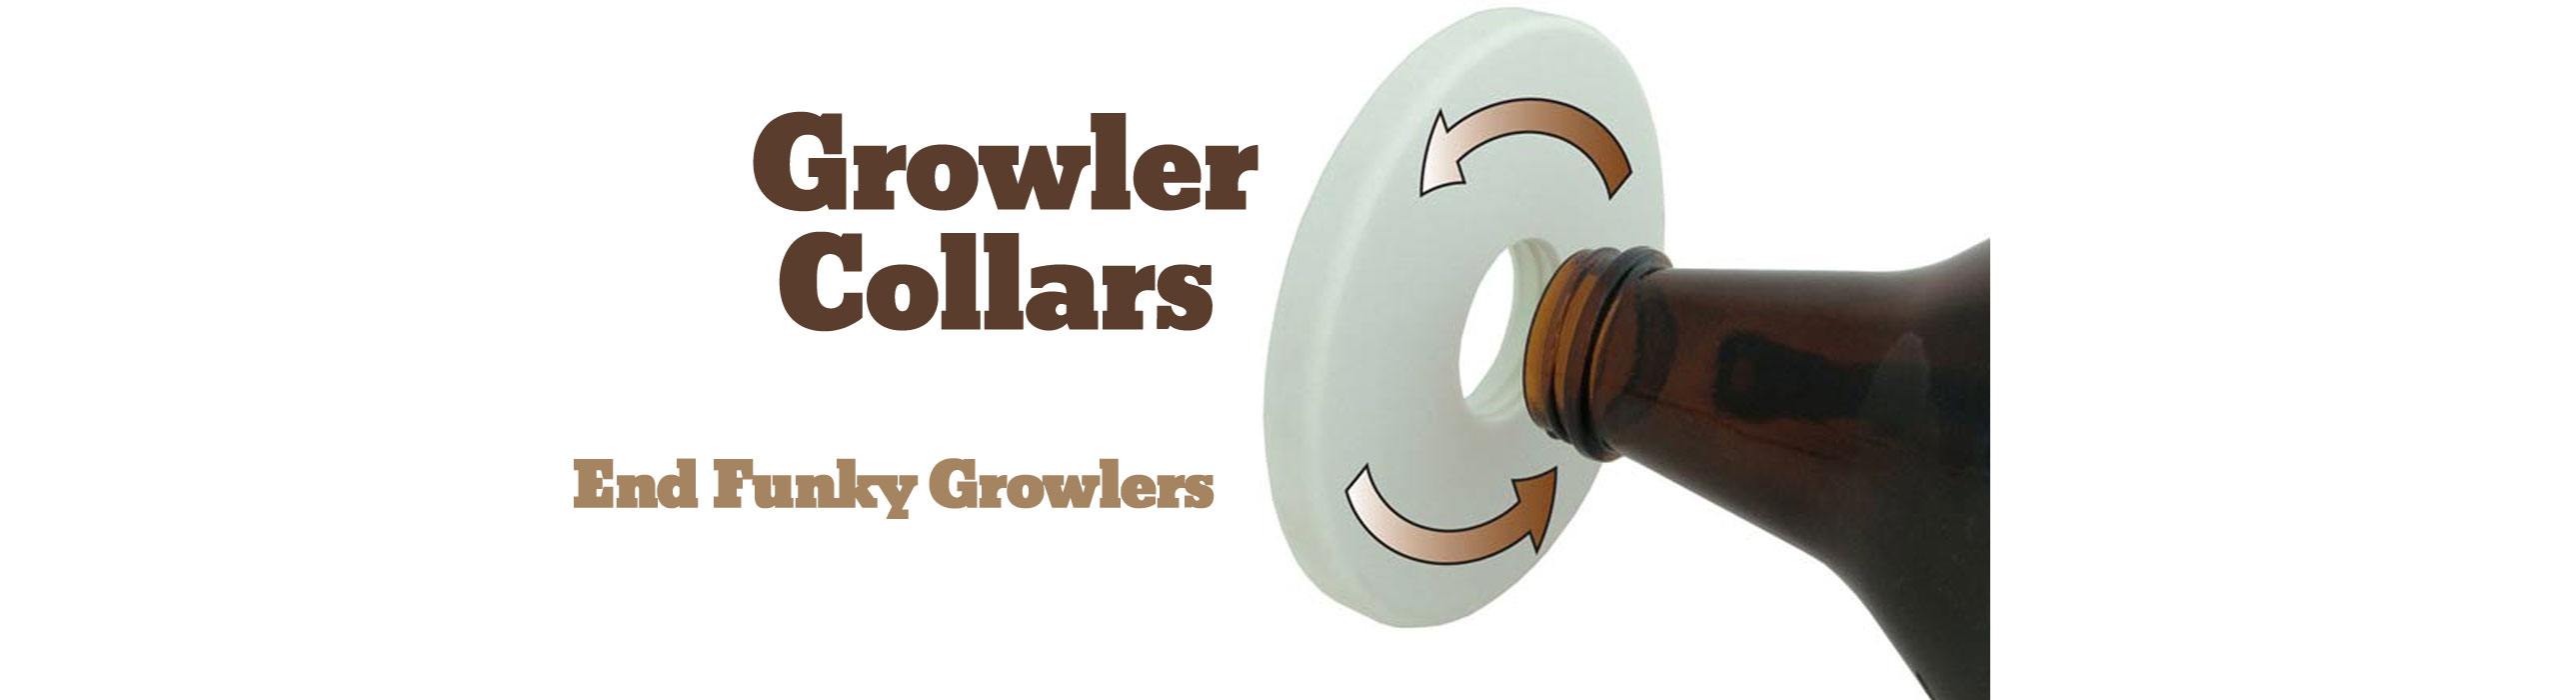 Beer Growler Collar